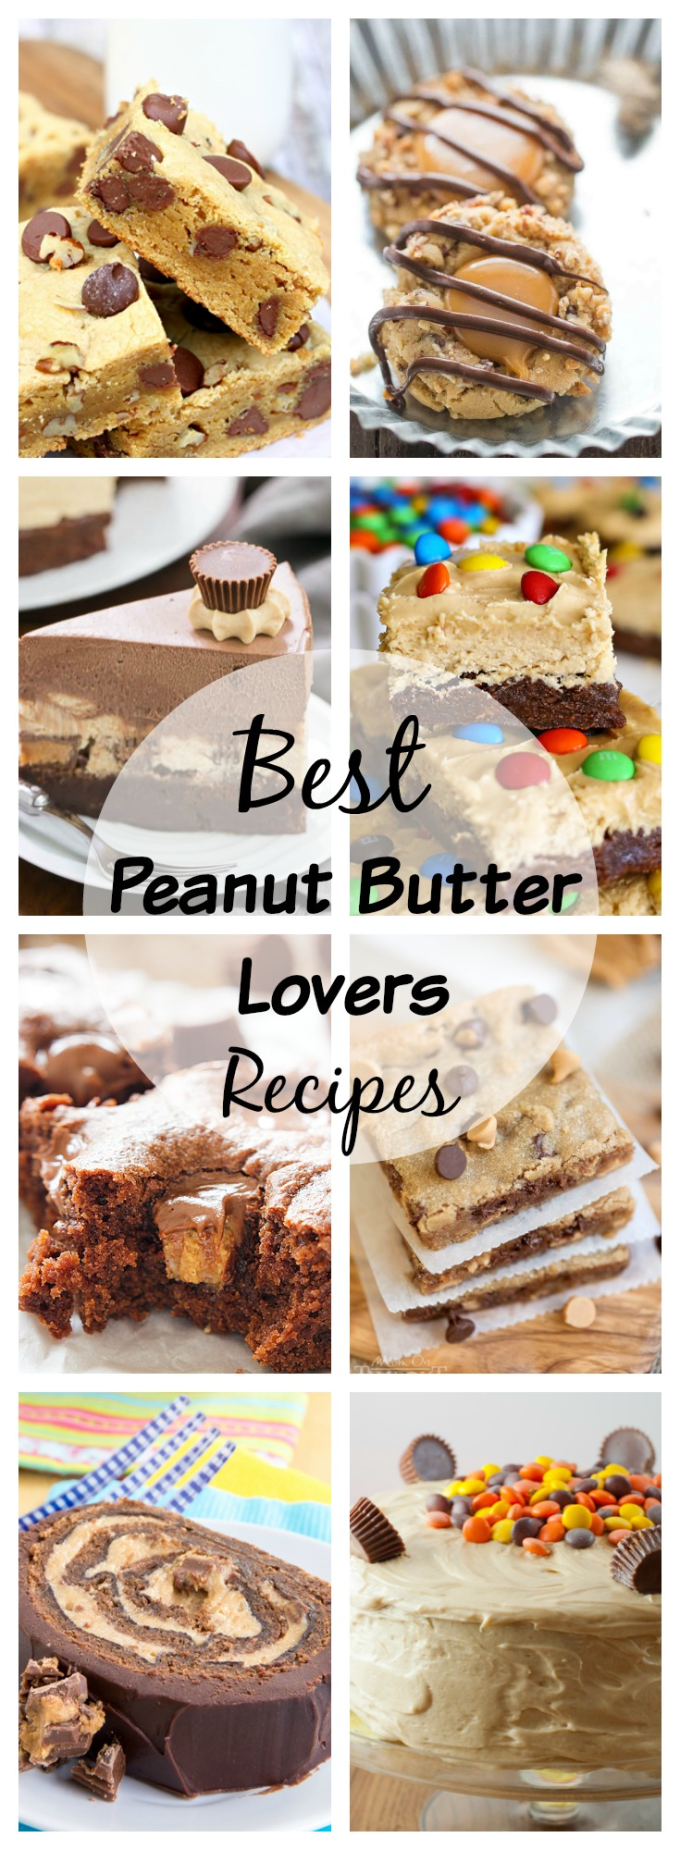 24 Insanely Delicious Peanut Butter Recipes for the peanut butter lover! From dinner to dessert, there is something for everyone!